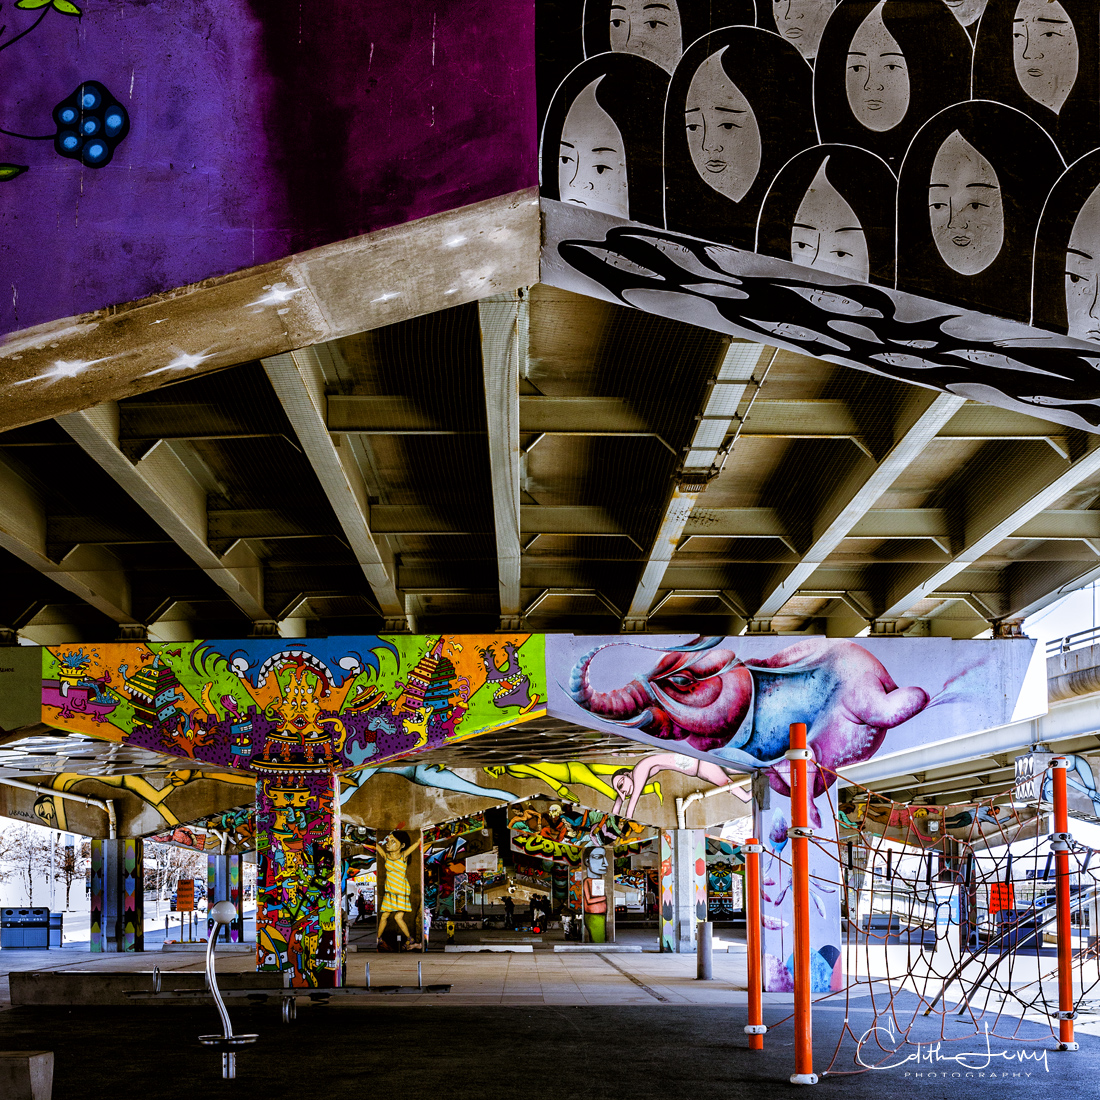 Underpass Park located in the east end of downtown Toronto officially opened in 2012 and turned a seedy and undesirable area...